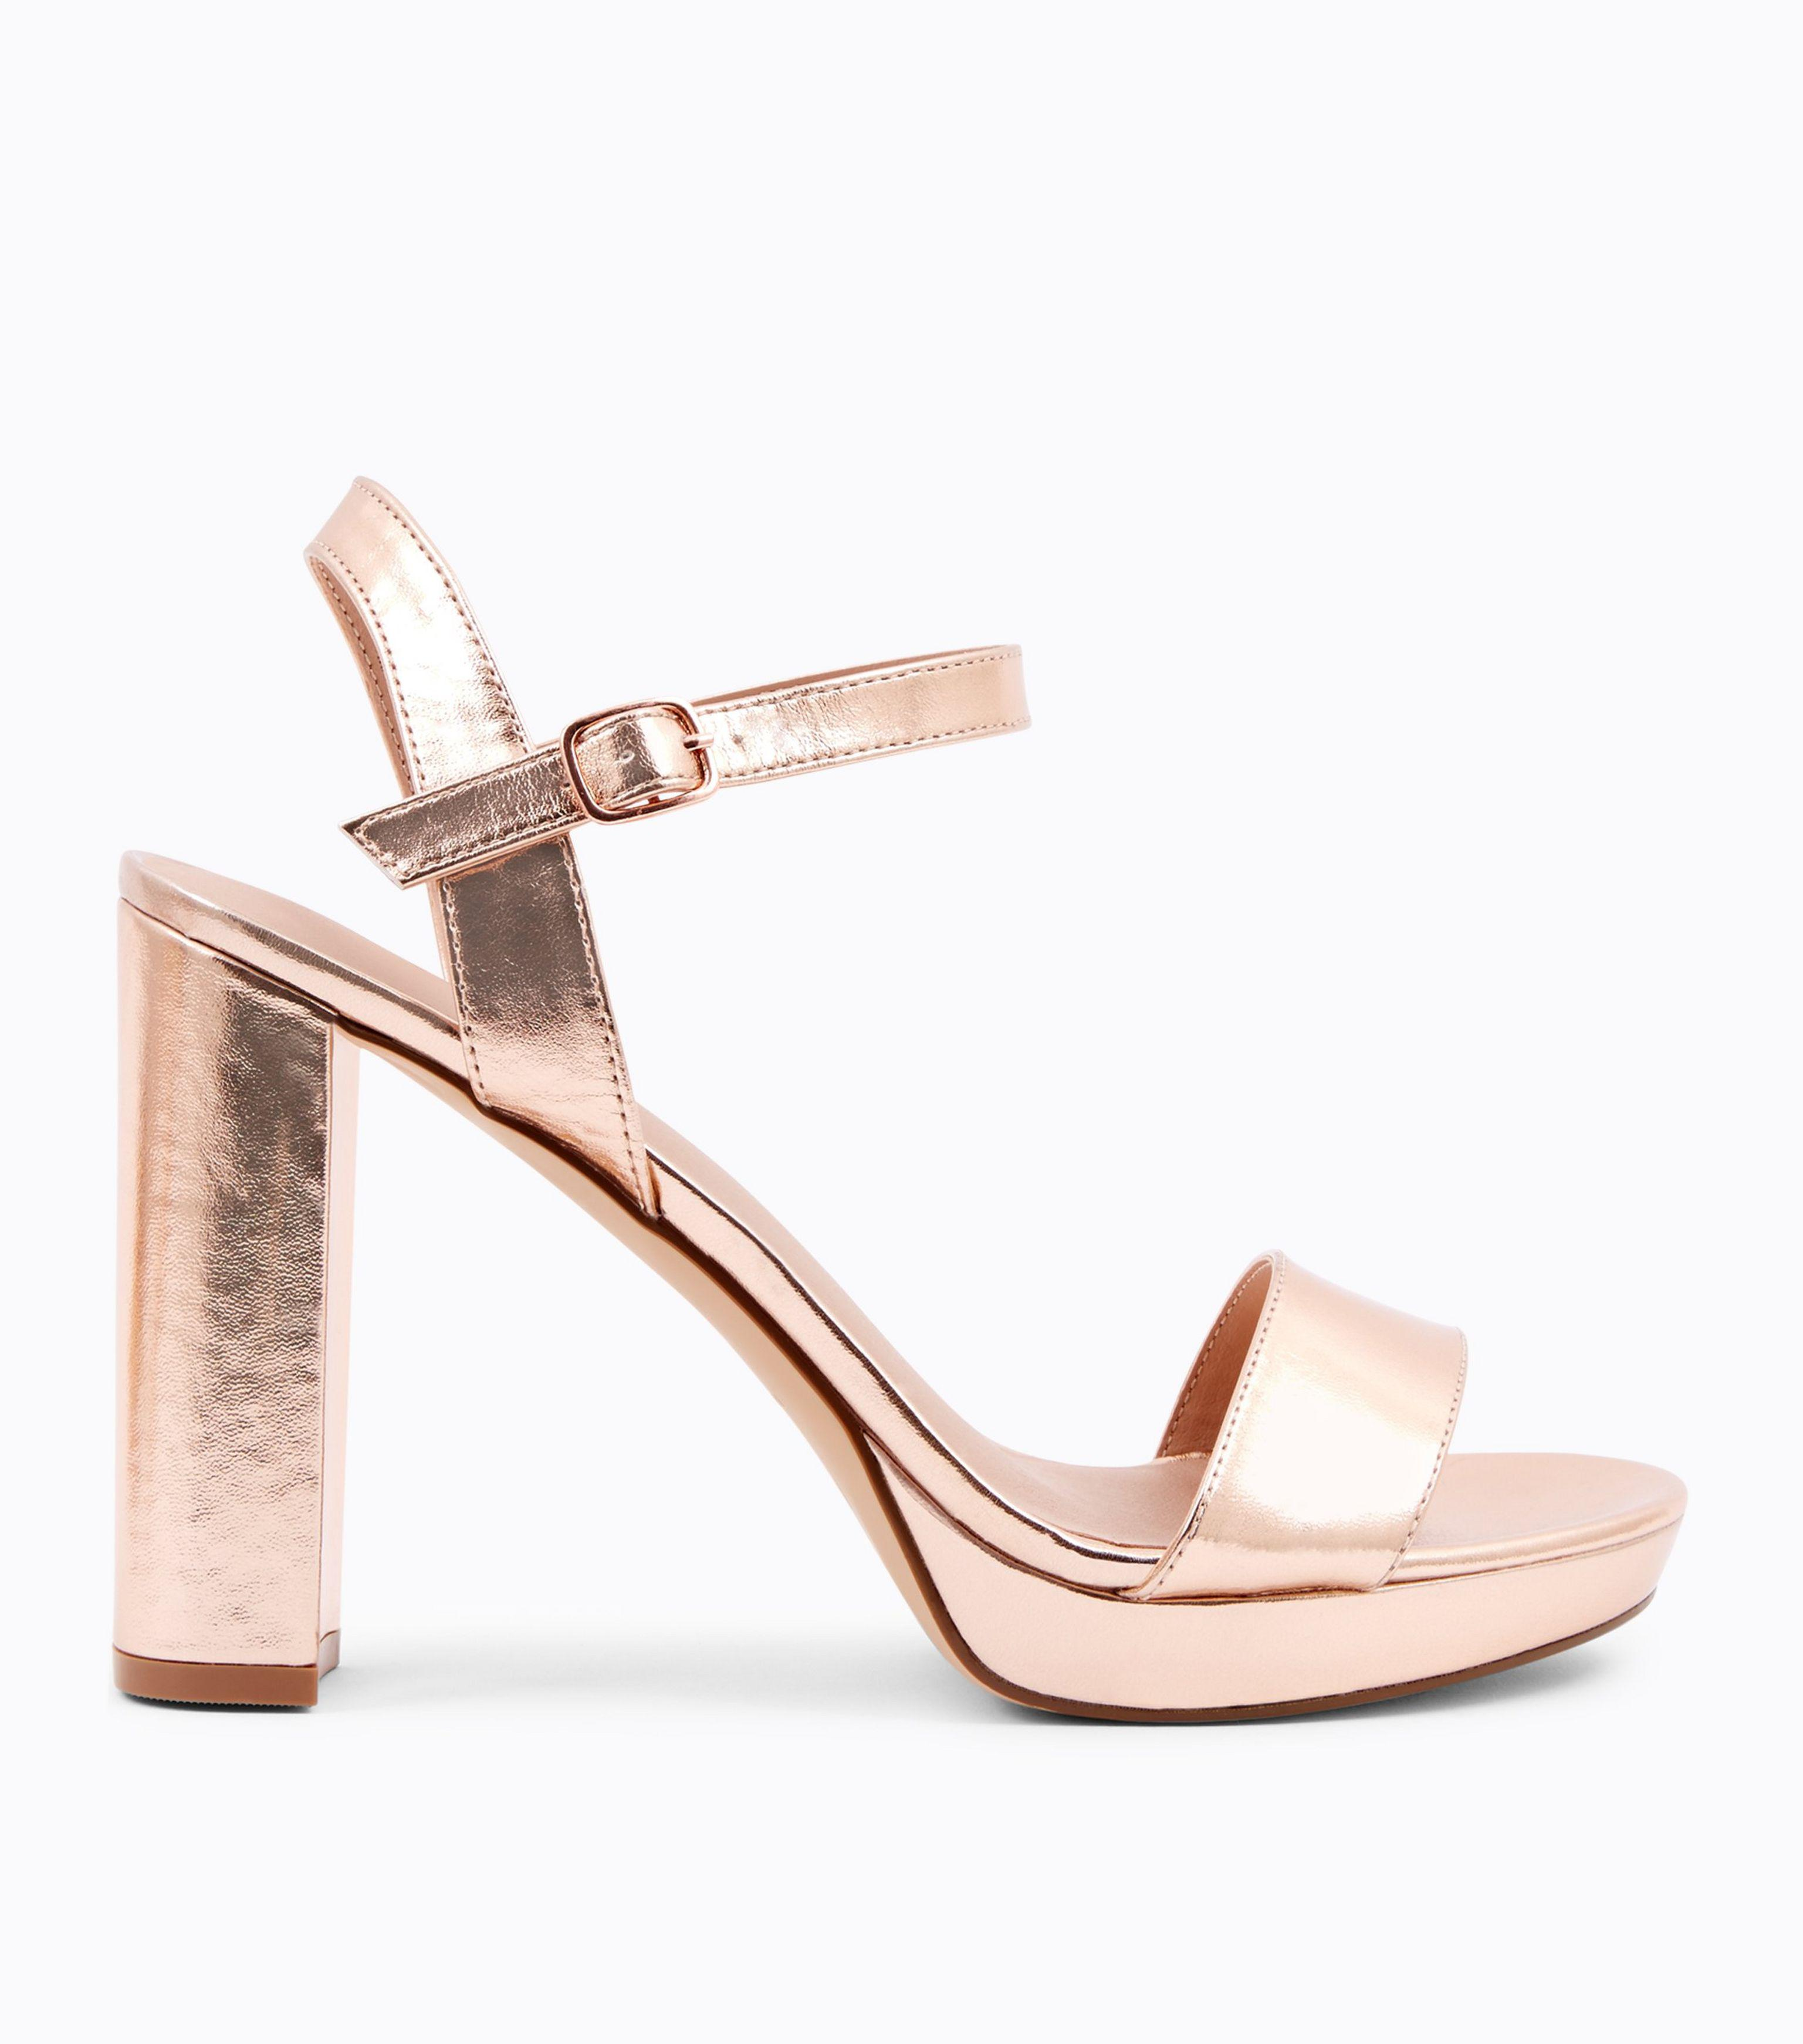 64d1bf24127 Long-Touch to Zoom. New Look - Pink Rose Gold Metallic Block Heel Platform  Sandals ...